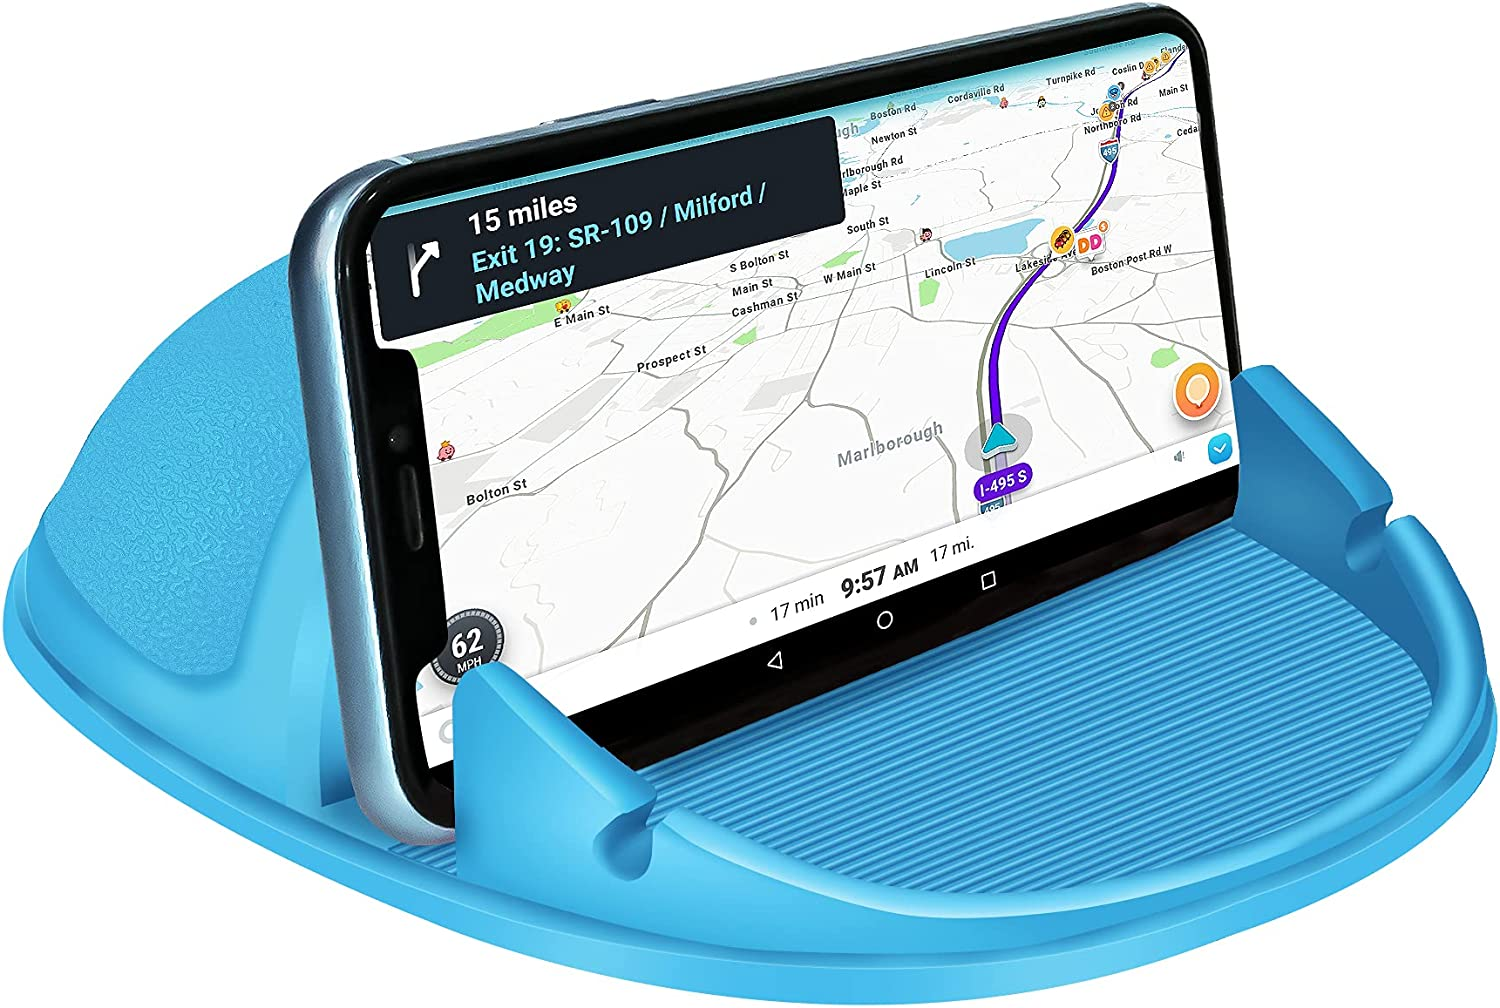 Loncaster Car Phone Holder, Car Phone Mount Silicone Car Pad Mat for Various Dashboards, Slip Free Desk Phone Stand Compatible with iPhone, Samsung, Android Smartphones, GPS Devices and More, Blue